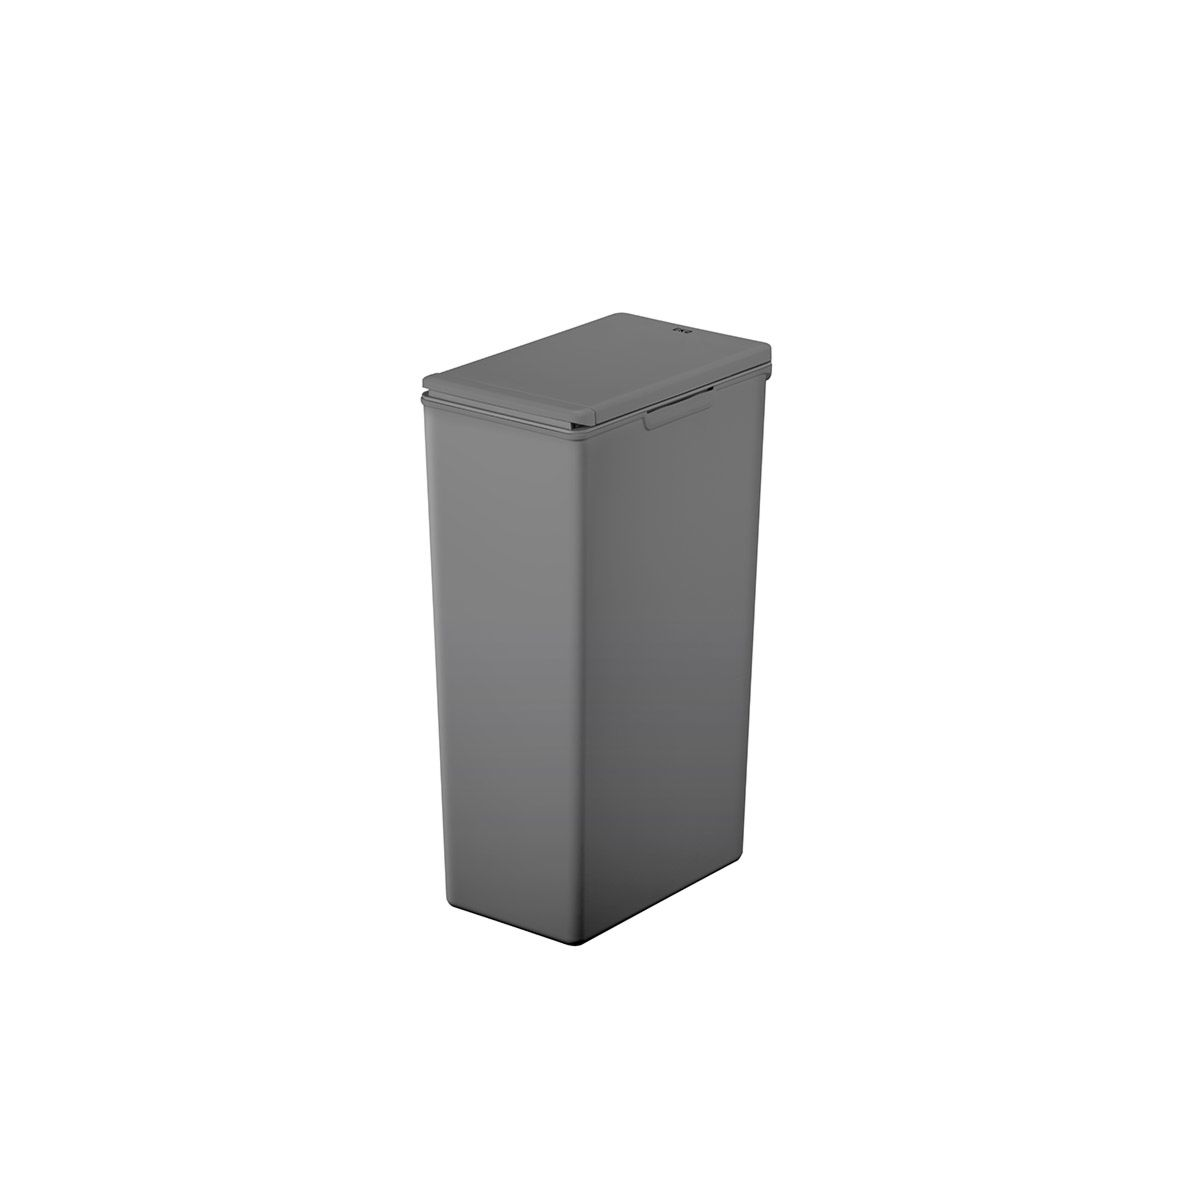 EKO Morandi 40L Touch Bin - Dark Grey